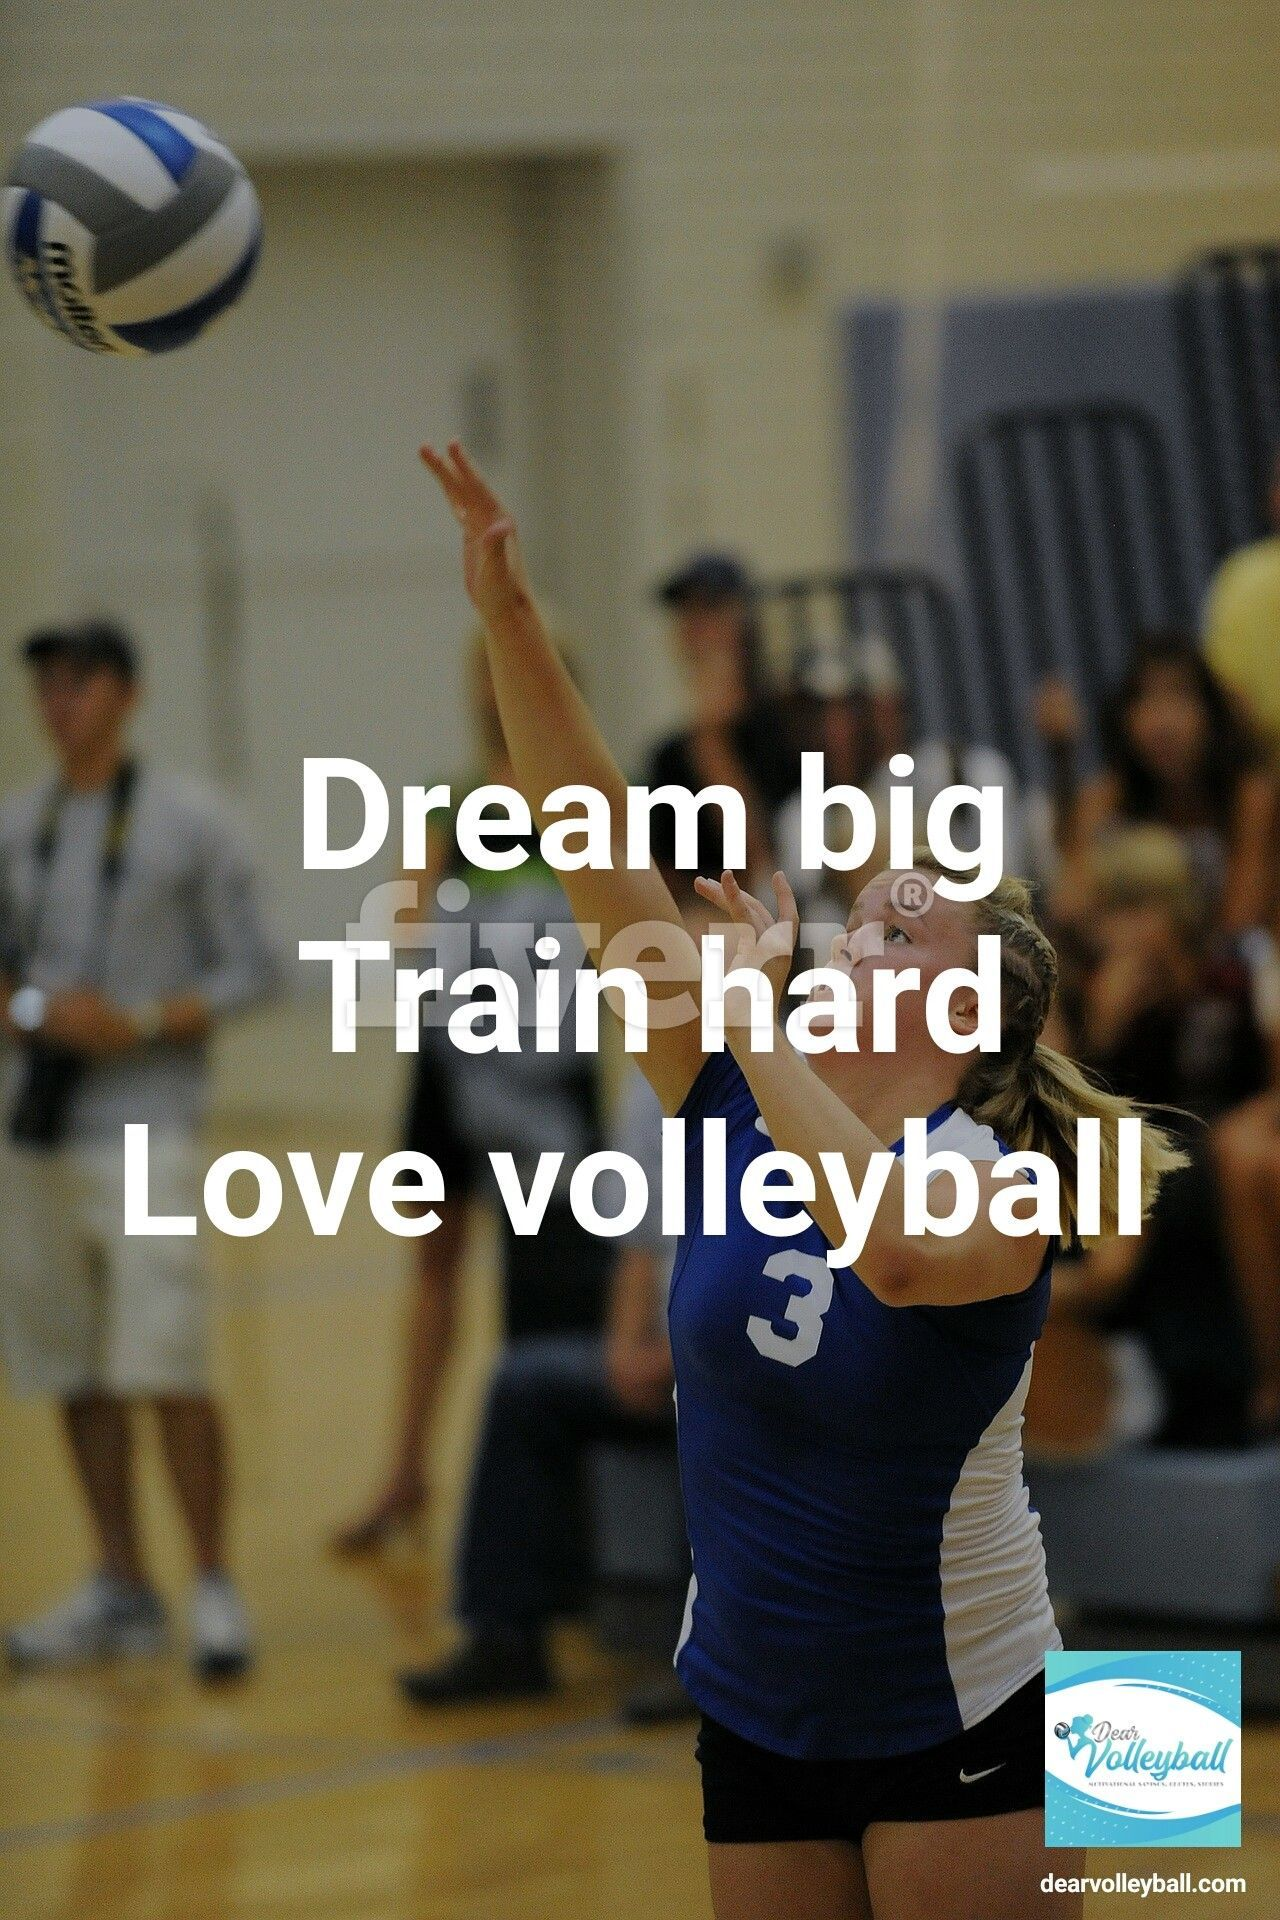 The Volleyball Quote My Club Players Were Most Inspired By Club Inspired Players Quot In 2020 Volleyball Quotes Motivational Volleyball Quotes Encouragement Quotes